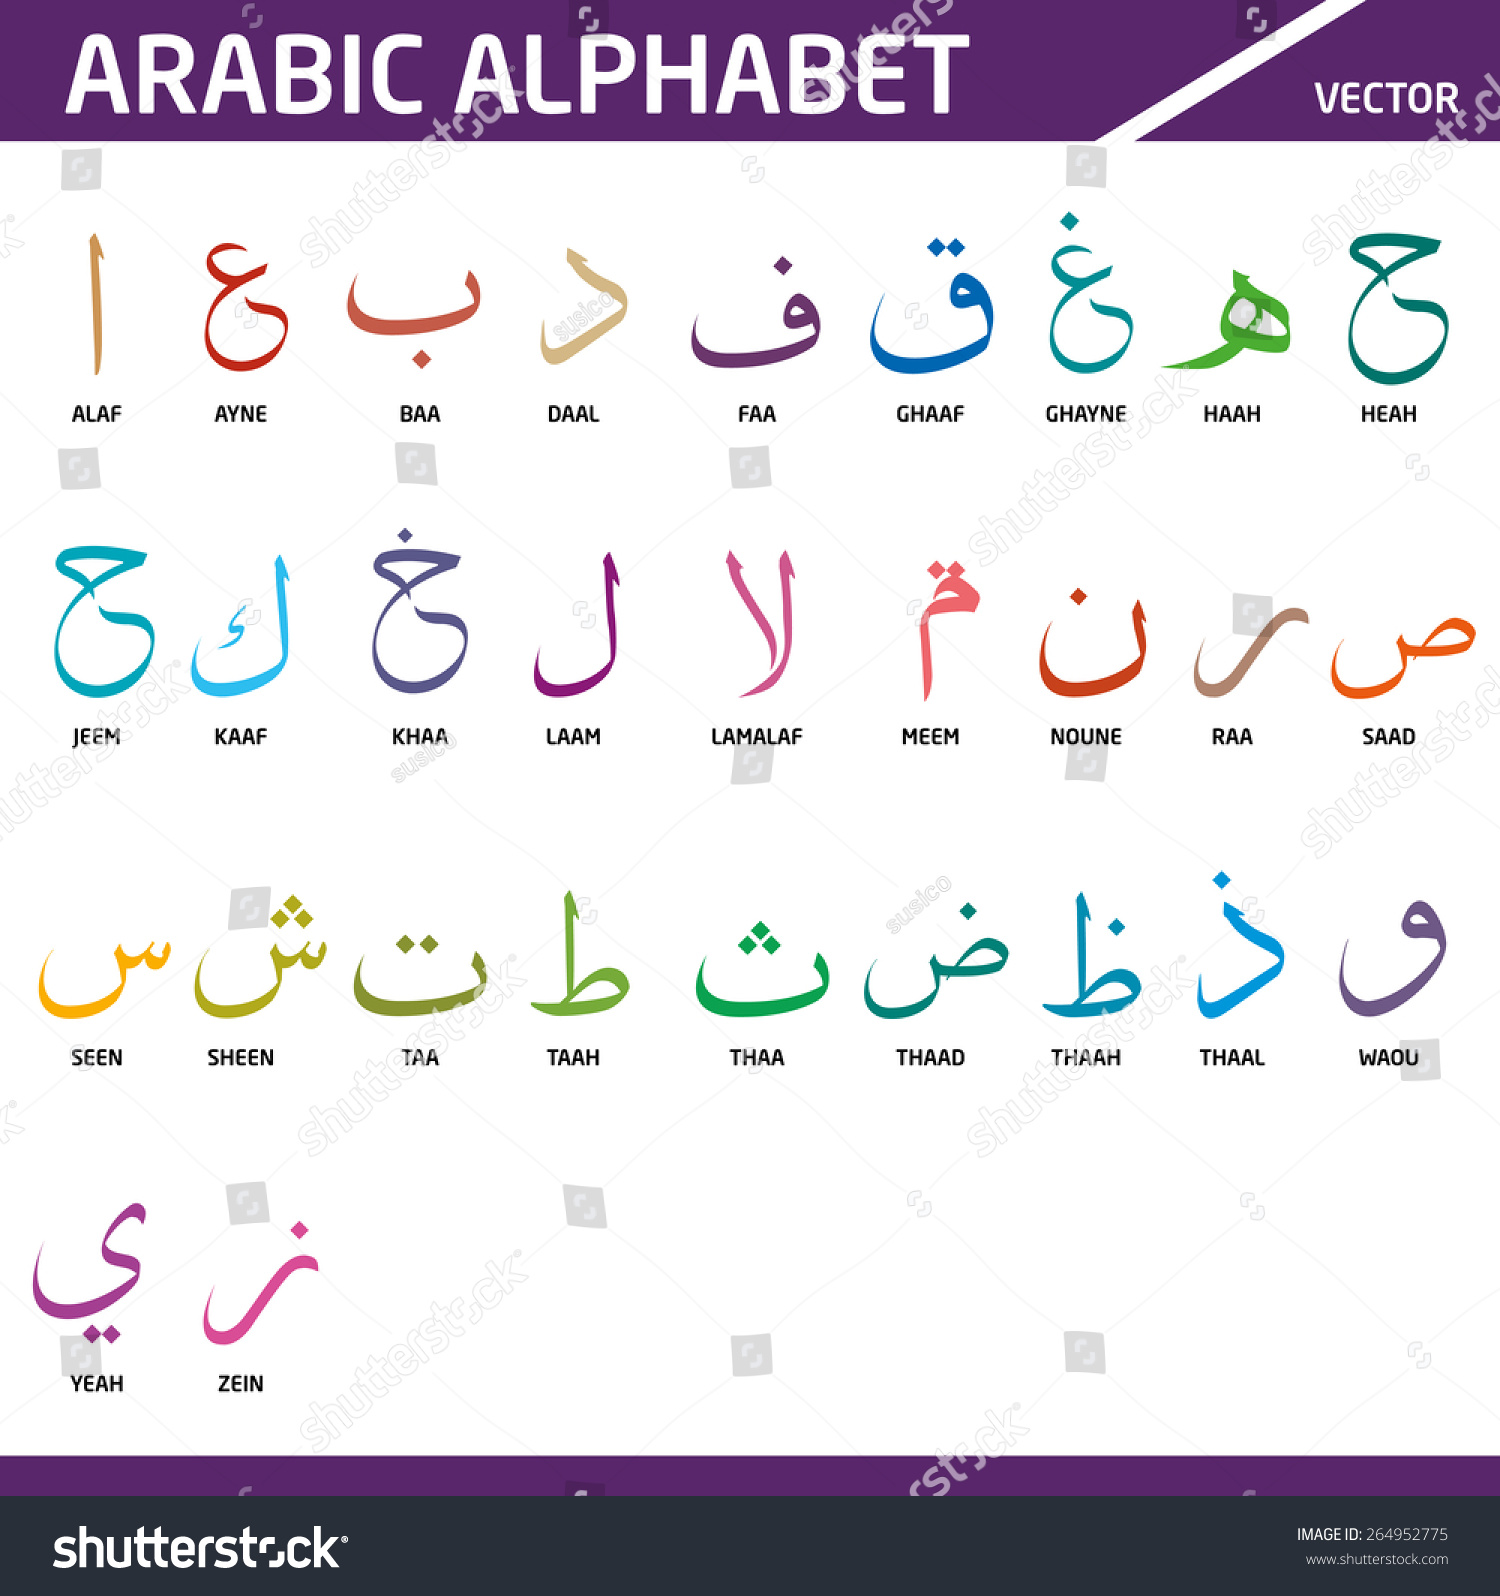 worksheet Shapes Names names shapes letters colorful arabic alphabet stock vector the and of in alphabet